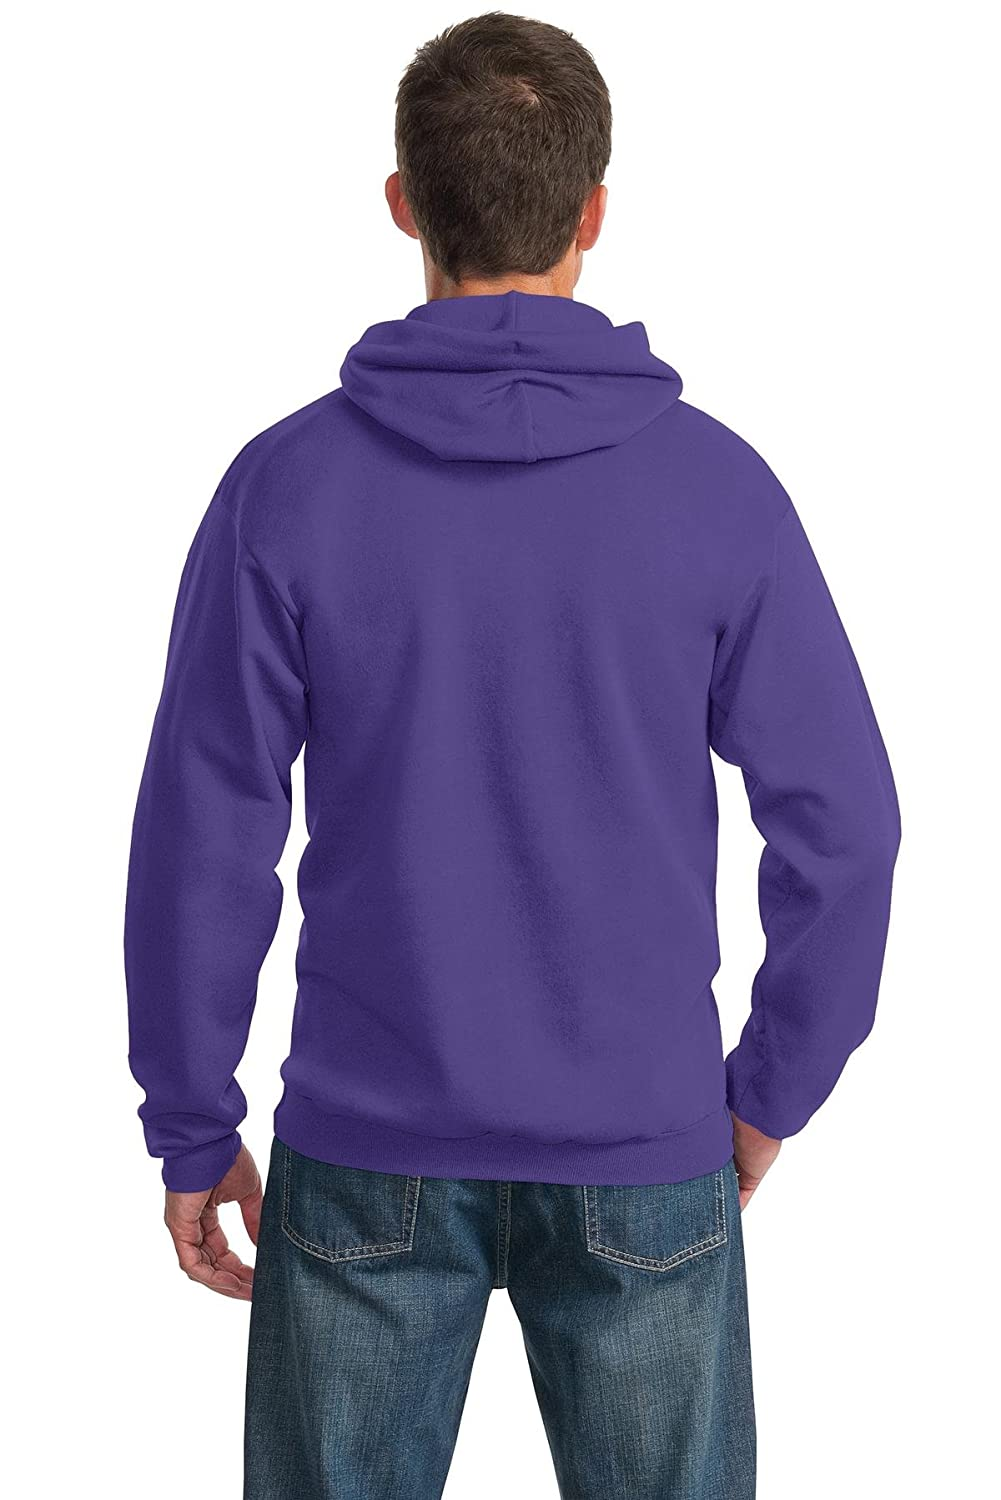 Port /& Company PC90H Pullover Hooded Sweatshirt Purple L